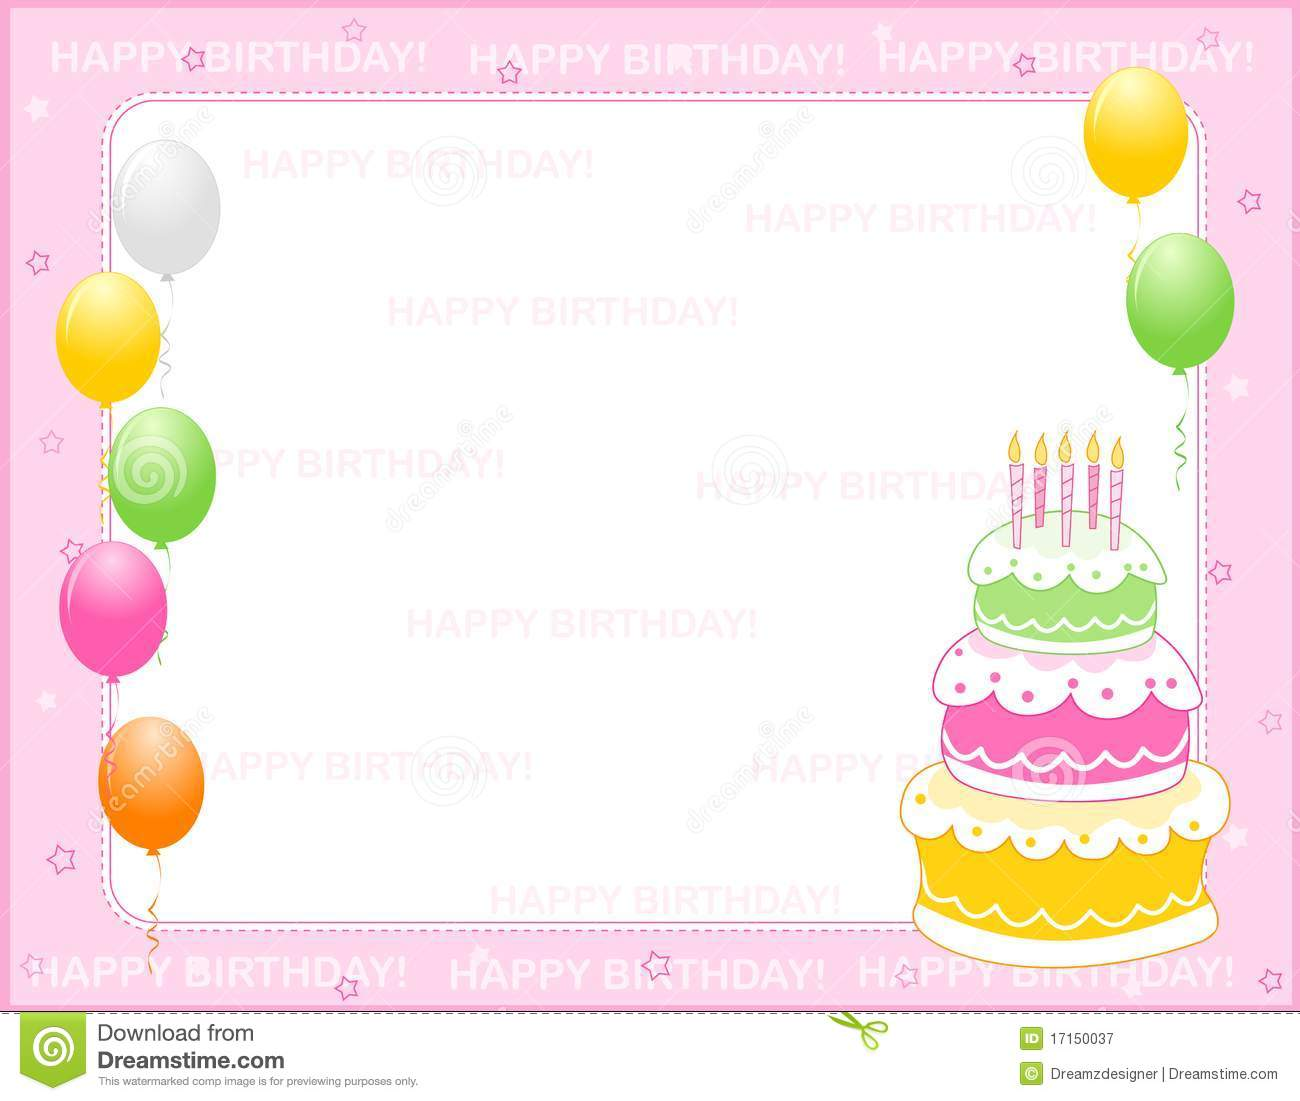 picture of invitation card of birthday ; Superb-Cards-For-Birthday-Invitation-41-for-Your-Card-Inspiration-with-Cards-For-Birthday-Invitation